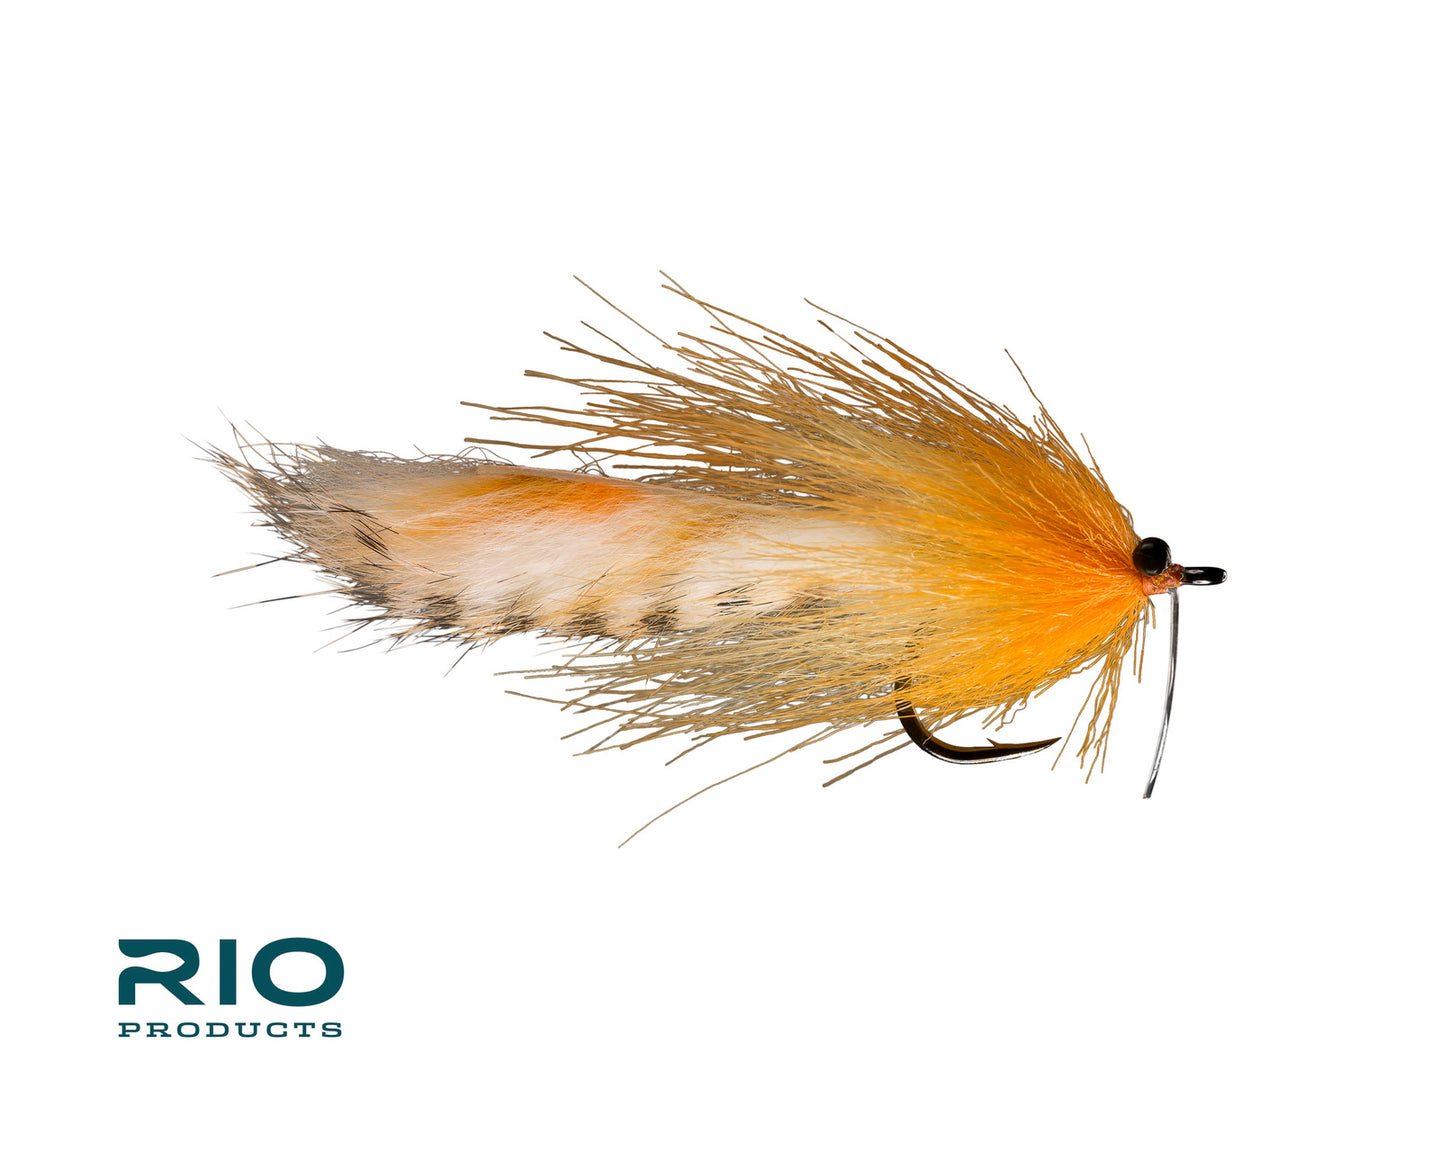 RIO Flies - RIO's Smelling Salt - Tan & Orange